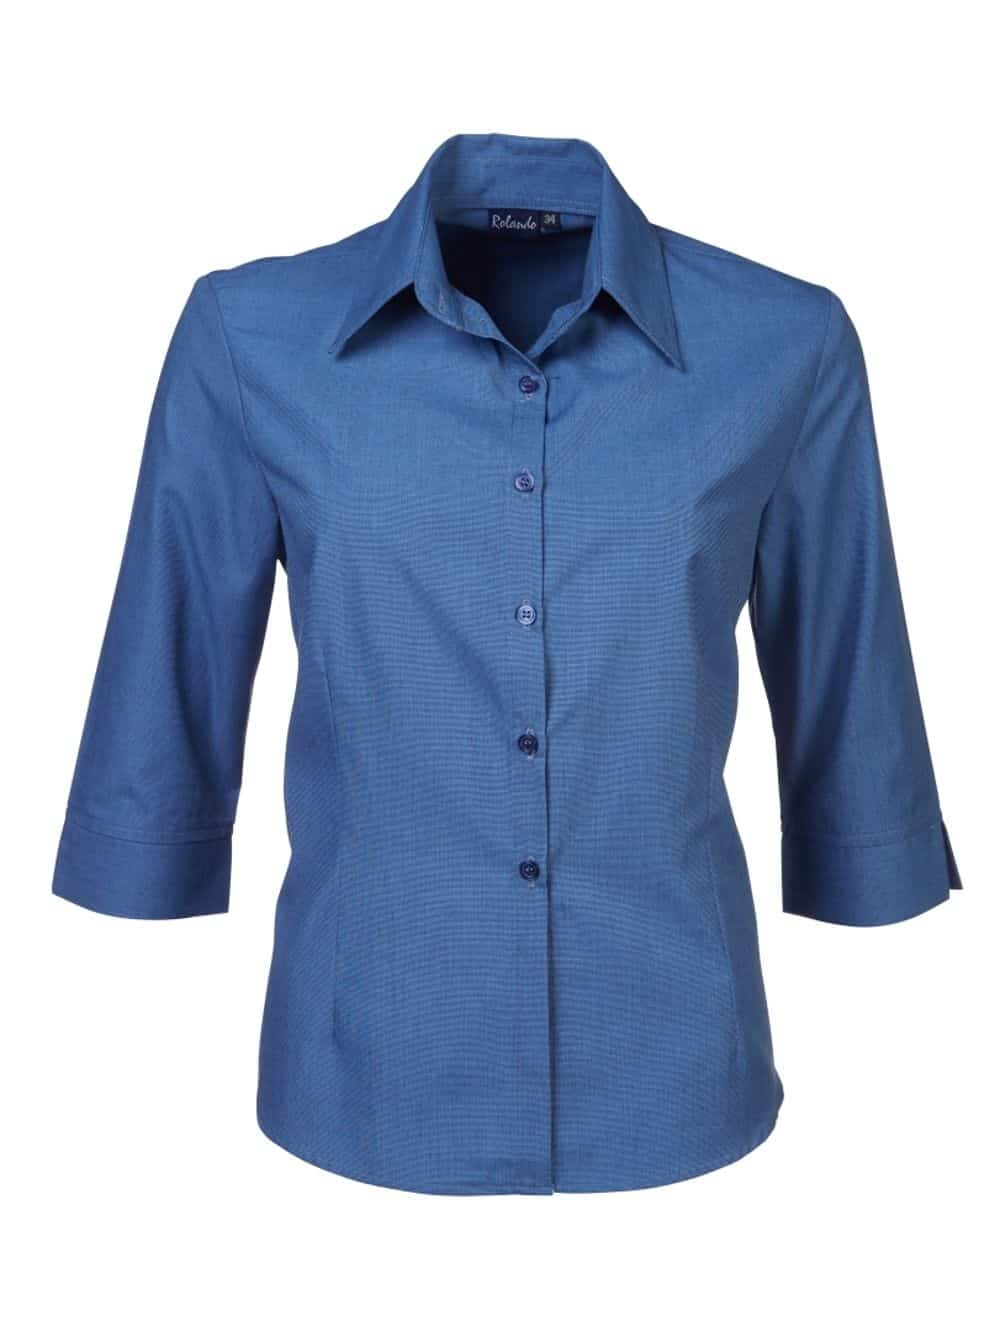 3/4 G01 Cathy Blouse Lounge Shirts and Blouses